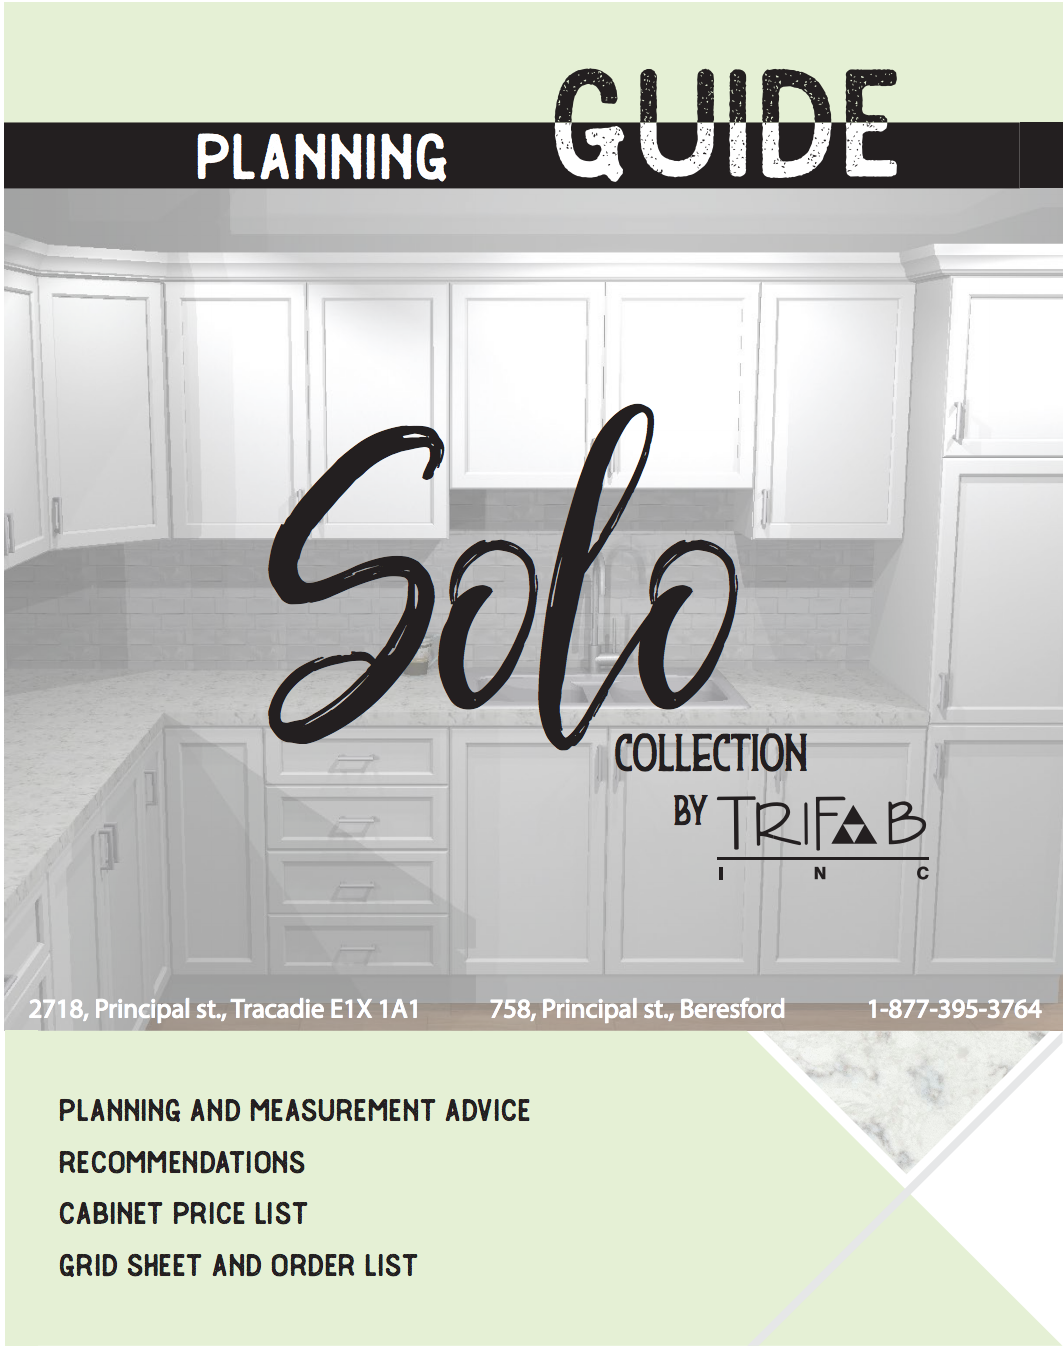 Planning Guide